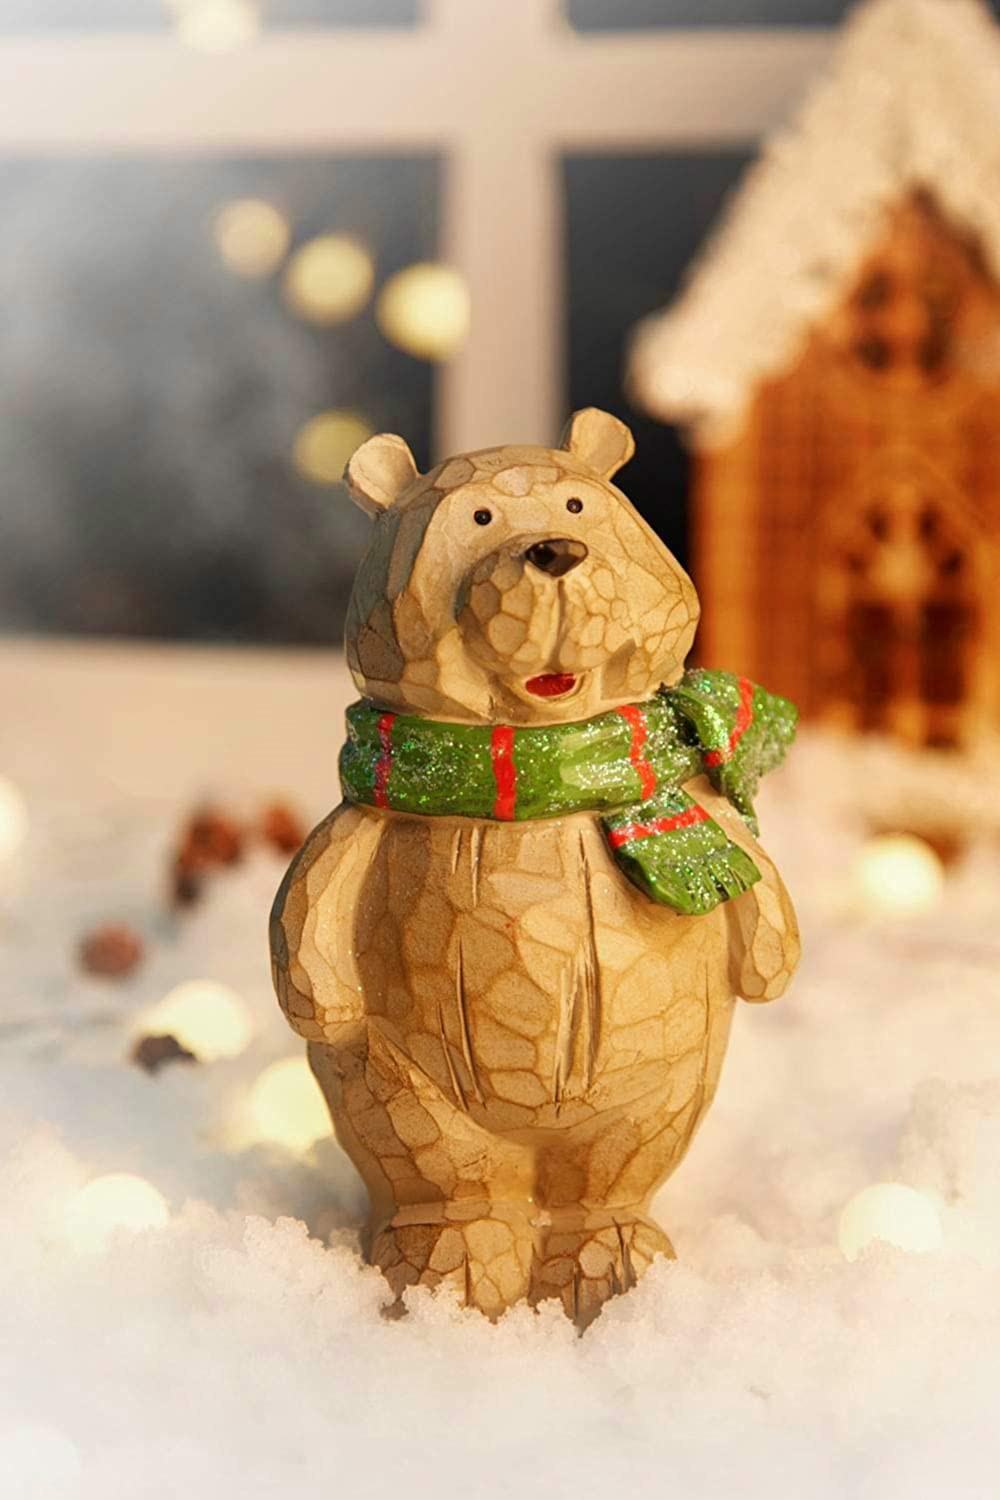 Carved Bear Christmas Decorations for Home, Resin Bear Figurines Decor Used for Holiday Indoor Decorations, Party Tables Decoration, Unique Christmas Home Decorations